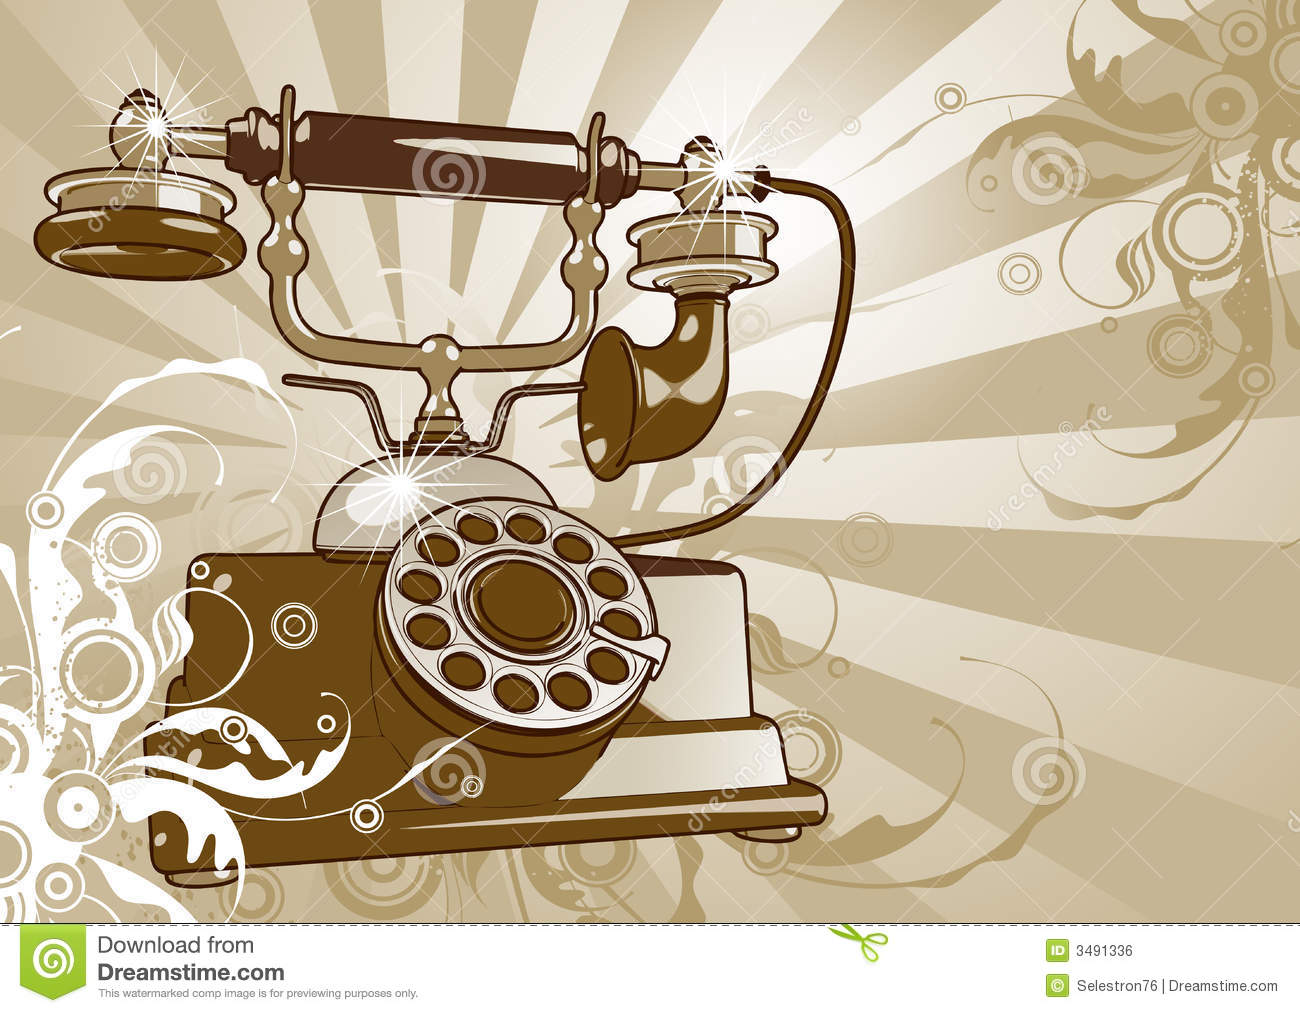 How To Wire A Rotary Phone Ring Schematics Data Wiring Diagrams Payphone Diagram Vintage Telephone Royalty Free Stock Image 3491336 Old